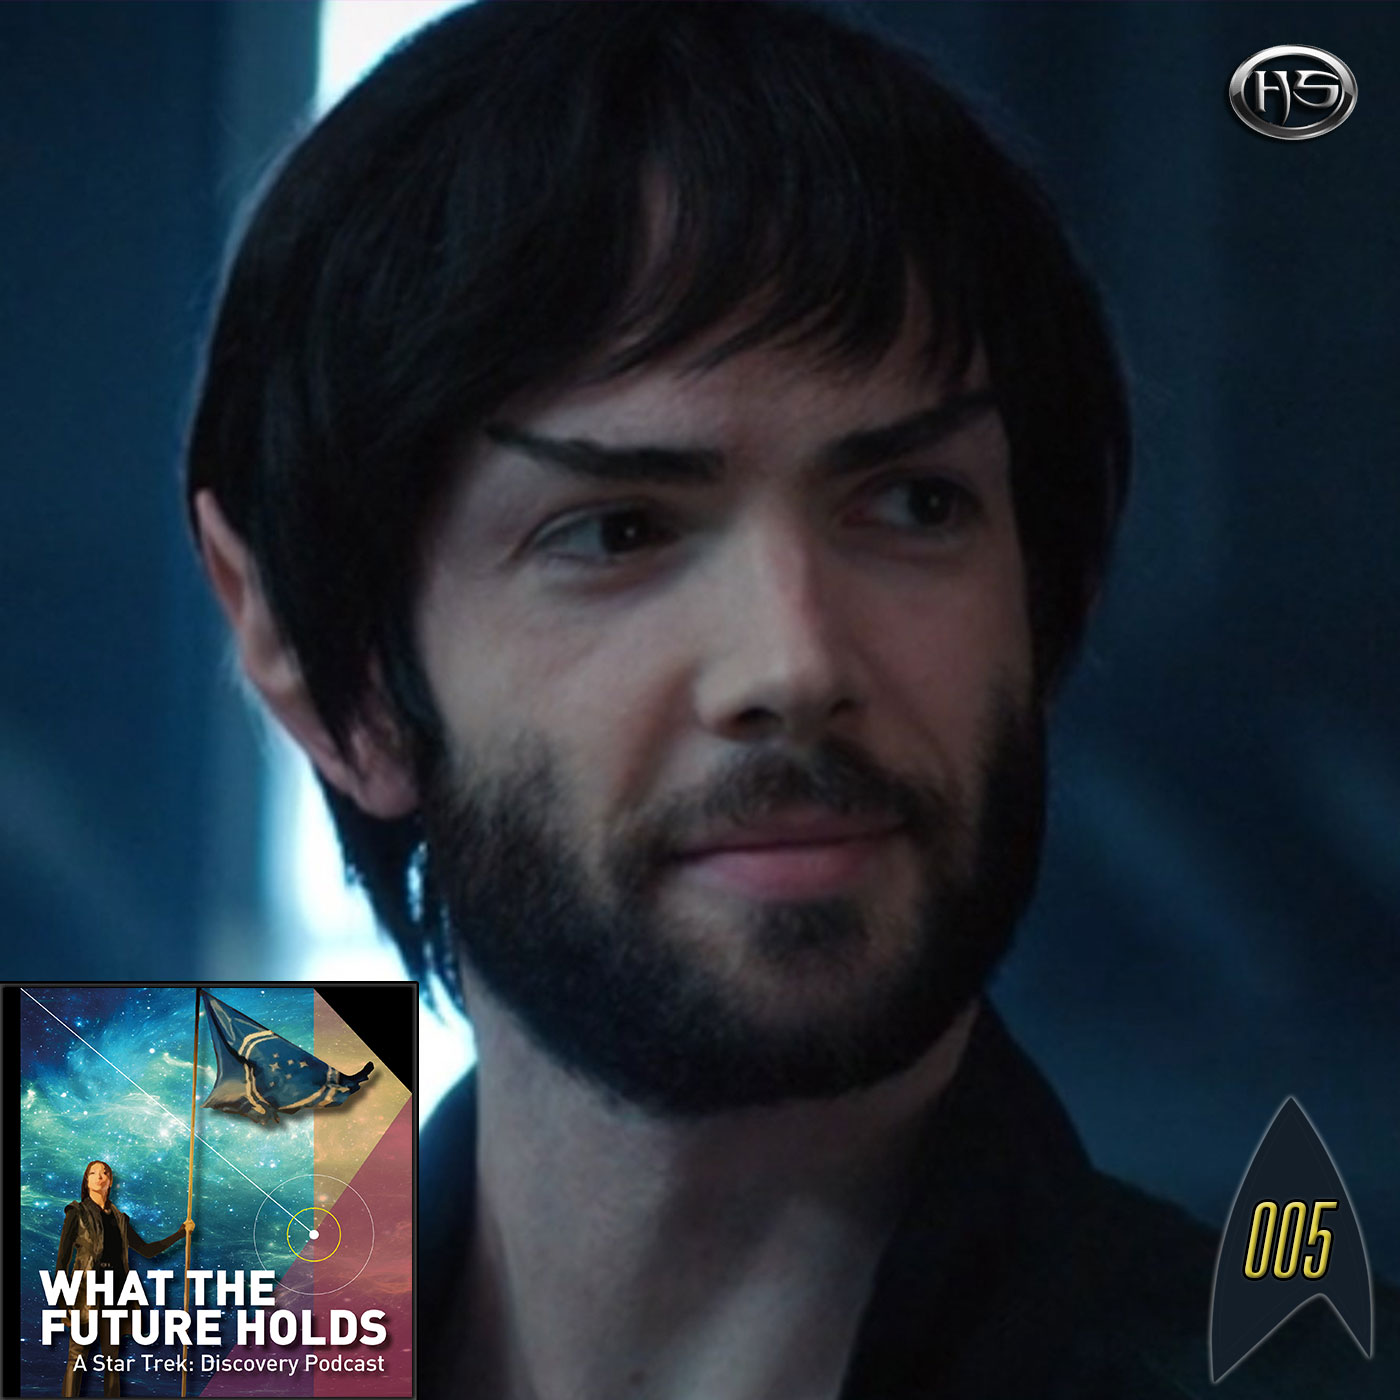 What The Future Holds Episode 5